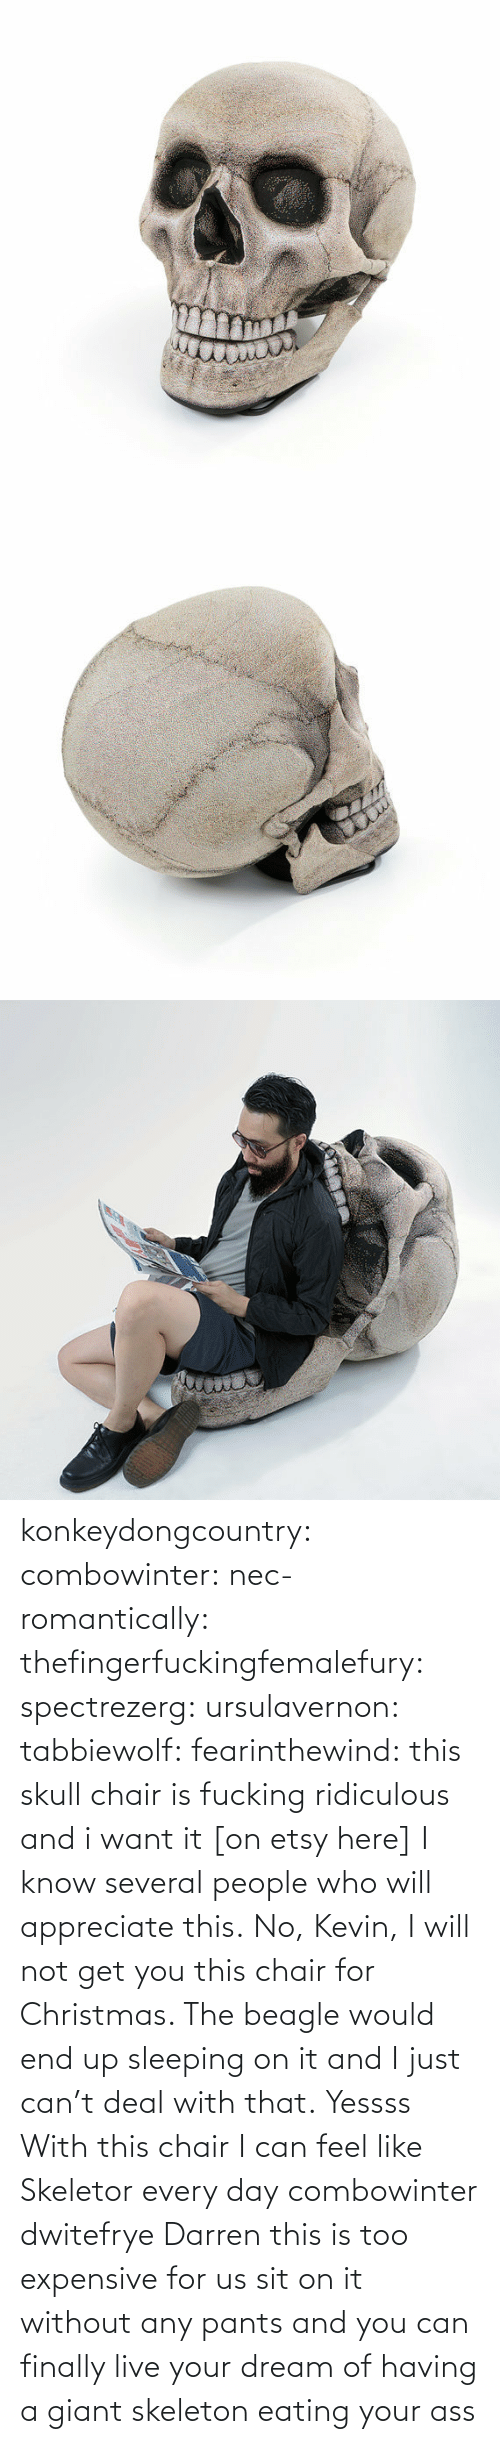 skeletor: konkeydongcountry:  combowinter:  nec-romantically:  thefingerfuckingfemalefury:  spectrezerg:  ursulavernon:  tabbiewolf:  fearinthewind:  this skull chair is fucking ridiculous and i want it [on etsy here]  I know several people who will appreciate this.  No, Kevin, I will not get you this chair for Christmas. The beagle would end up sleeping on it and I just can't deal with that.  Yessss  With this chair I can feel like Skeletor every day  combowinter dwitefrye  Darren this is too expensive for us  sit on it without any pants and you can finally live your dream of having a giant skeleton eating your ass